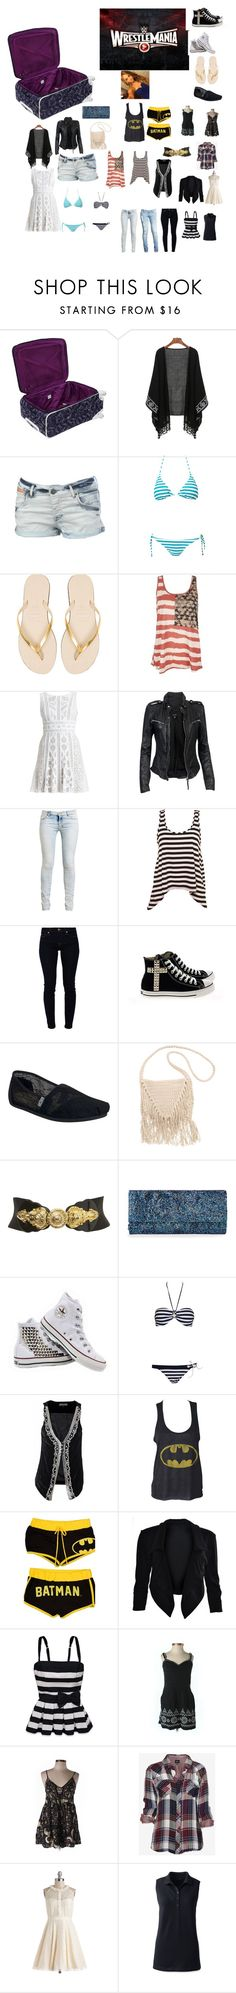 """""""Sarah's Suitcase for Wrestlemania 31"""" by wwetnagirl ❤ liked on Polyvore featuring Diane Von Furstenberg, Superdry, Pieces, Havaianas, BCBGMAXAZRIA, MuuBaa, Ksubi, 7 For All Mankind, Converse and TOMS"""